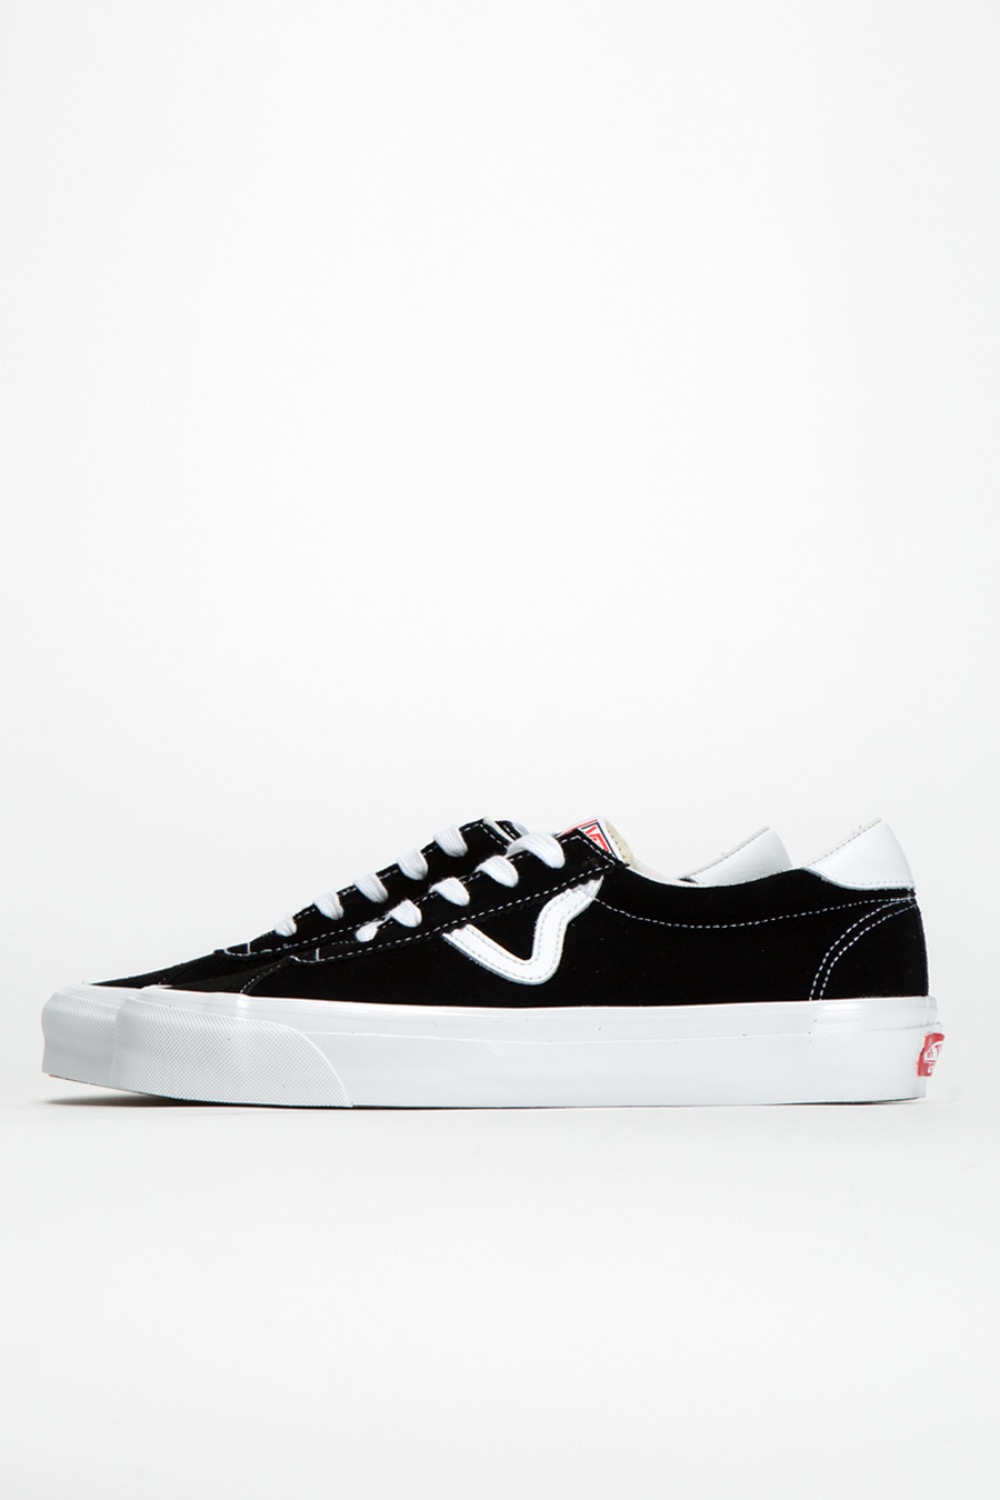 OG EPOCH LX(SUEDE)BLACK/TRUE WHITE